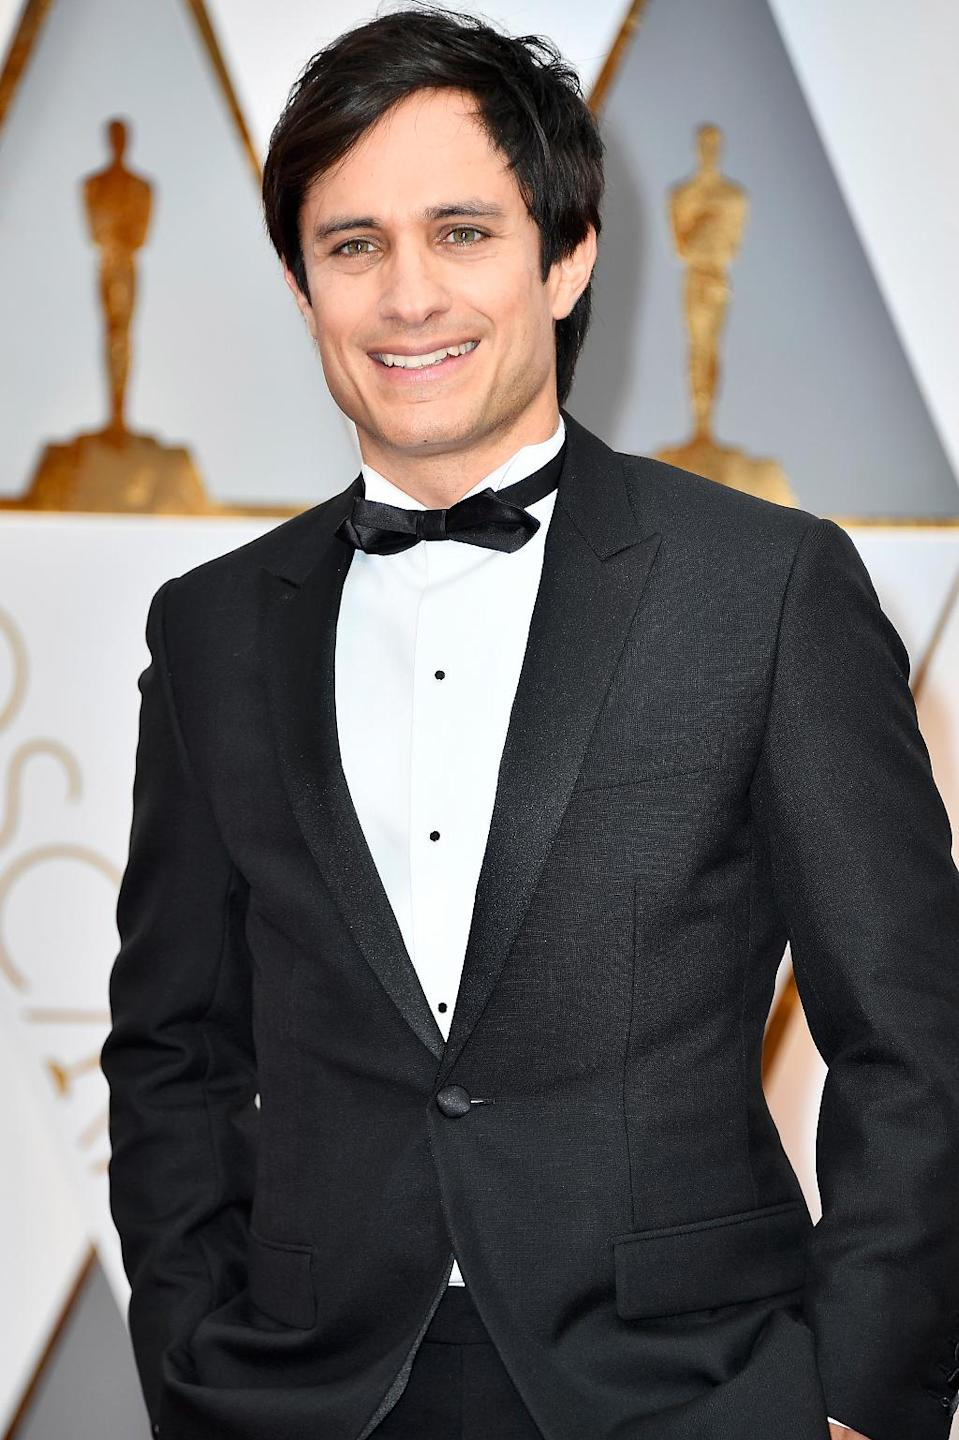 <p>Actor Gael García Bernal attends the 89th Annual Academy Awards at Hollywood & Highland Center on February 26, 2017 in Hollywood, California. (Photo by Frazer Harrison/Getty Images) </p>